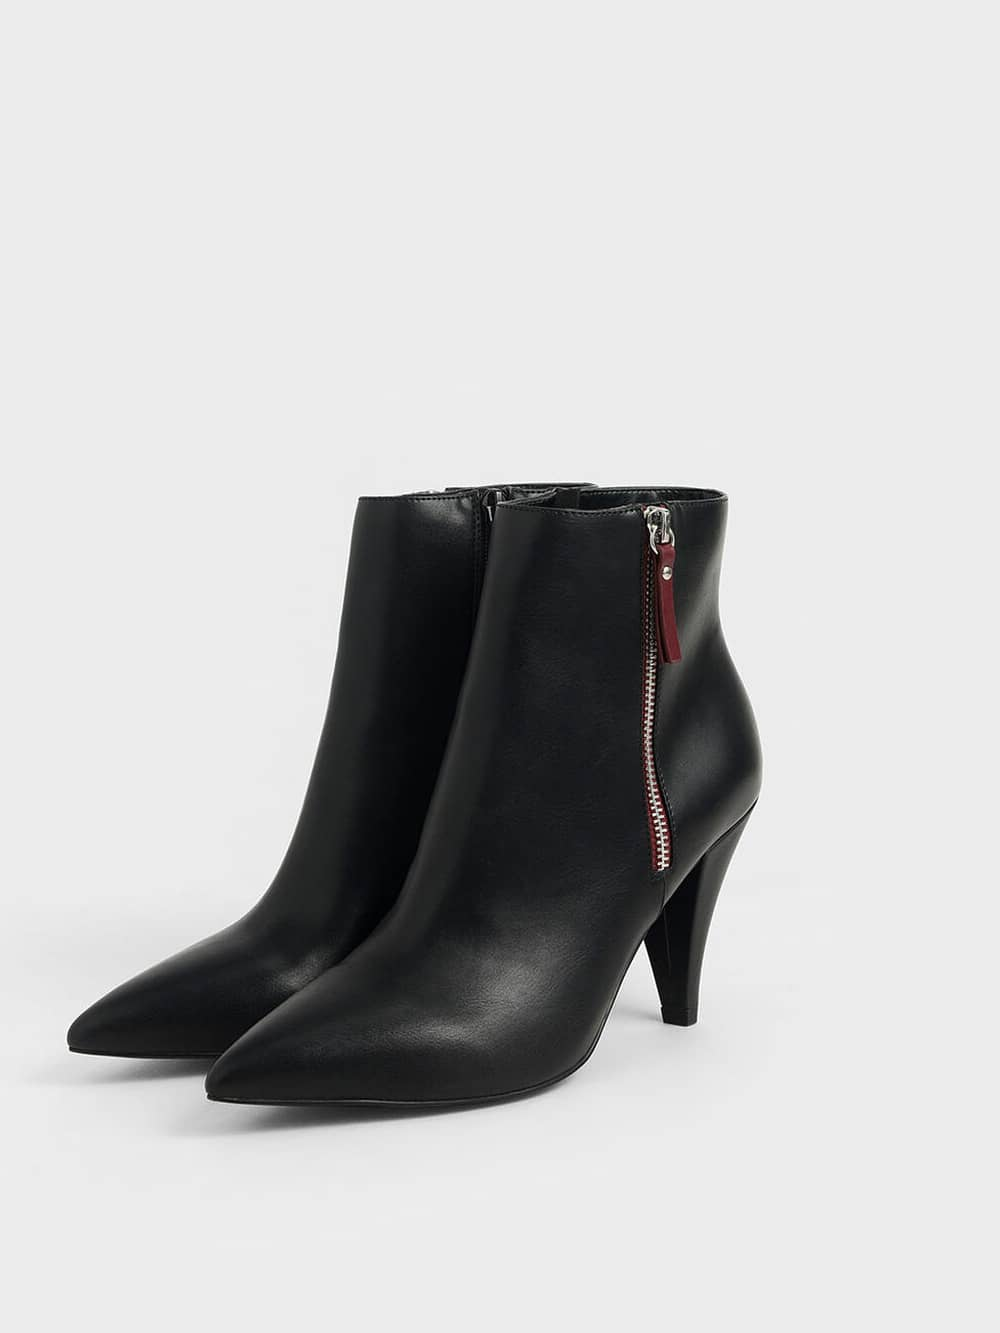 Double Zip Pointed Toe Ankle Boots